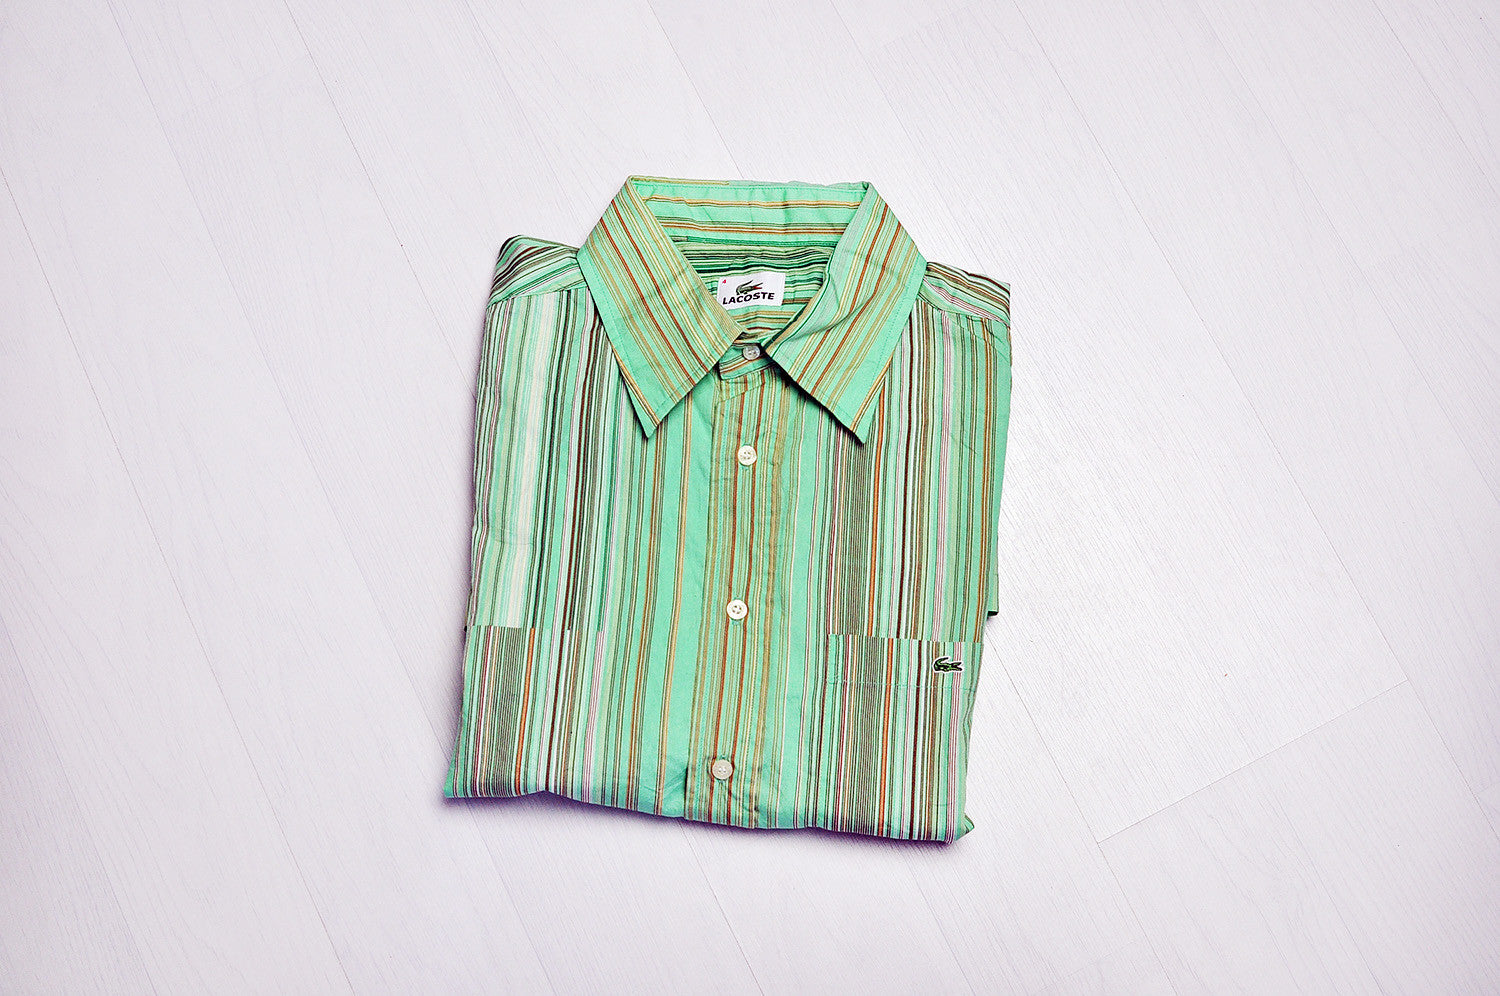 Vintage Lacoste Stripped Green Patterned Short Sleeve Summer Shirt